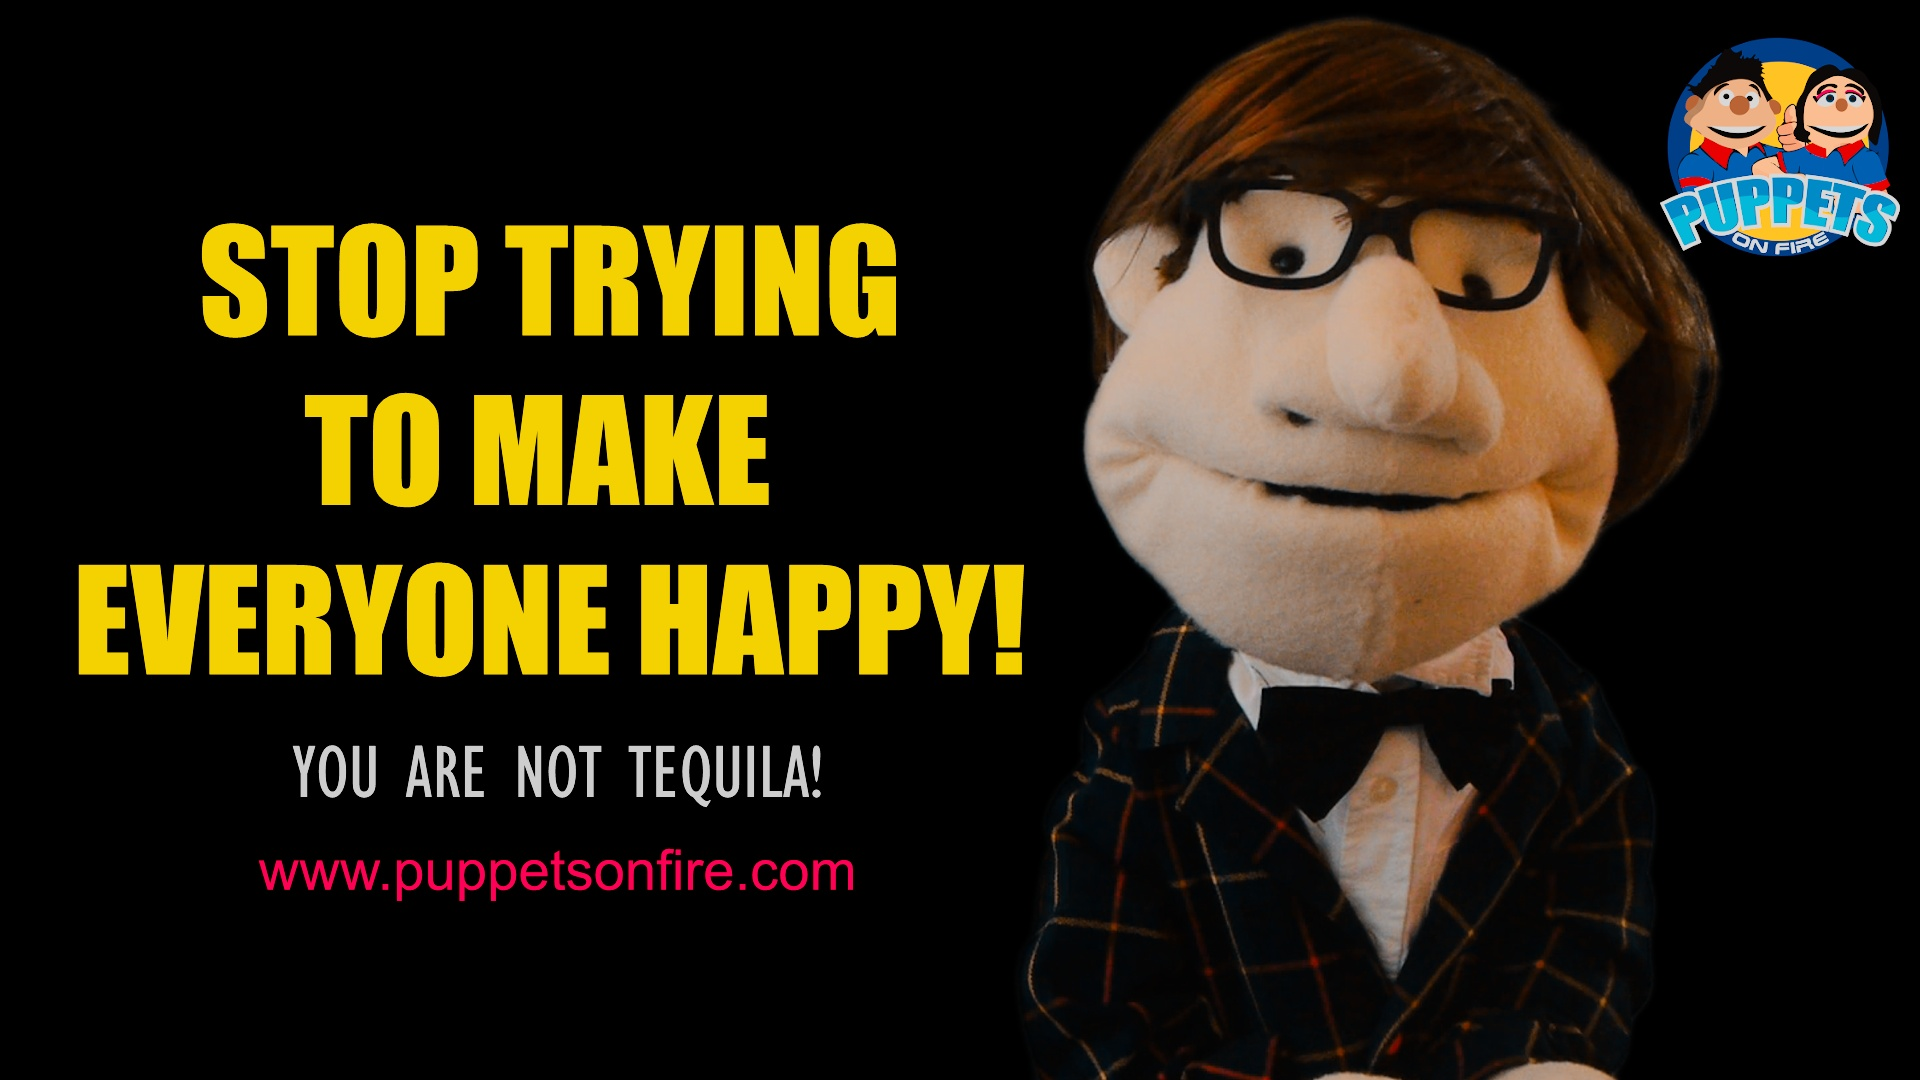 Stop trying to make everyone happy!